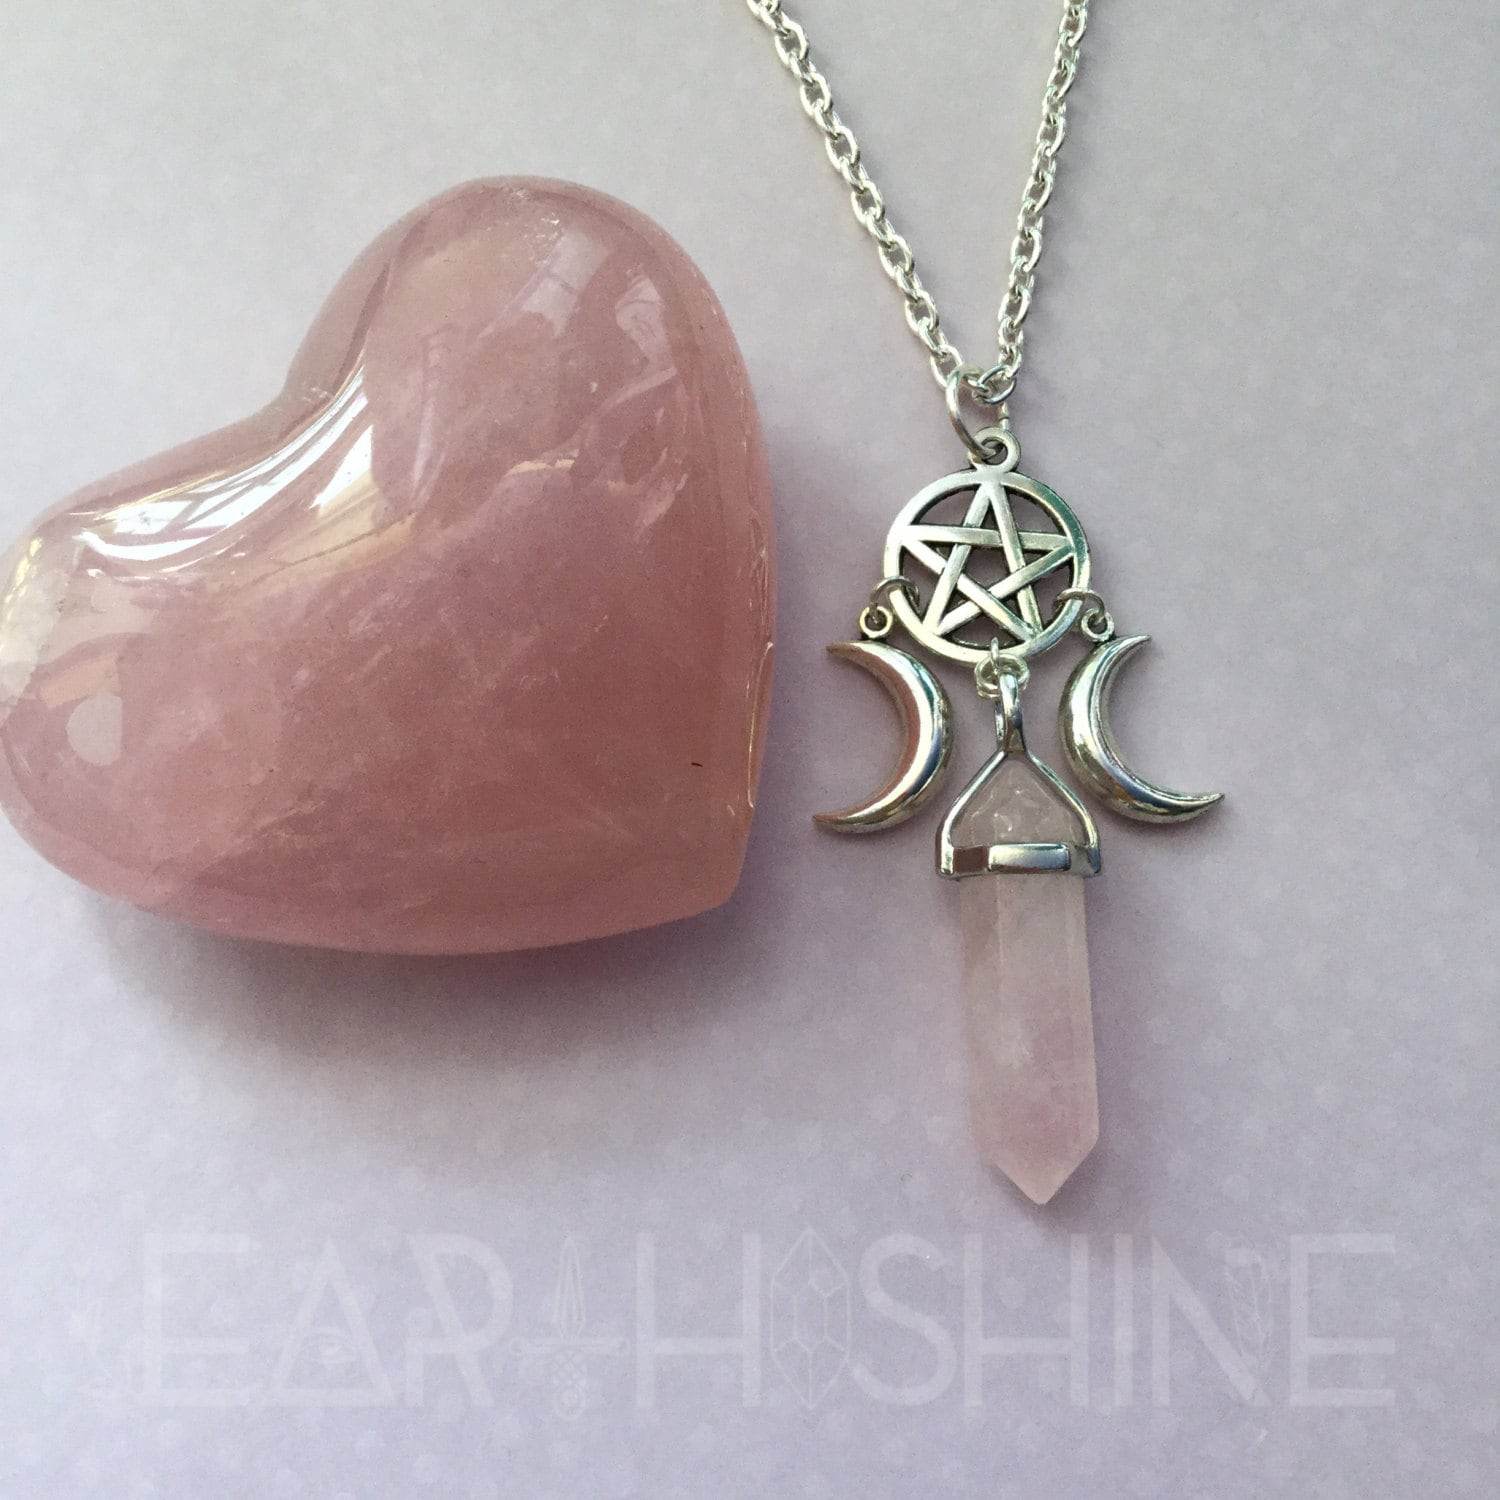 Crystal necklace witch moon pentacle necklace triple goddess gallery photo gallery photo mozeypictures Choice Image